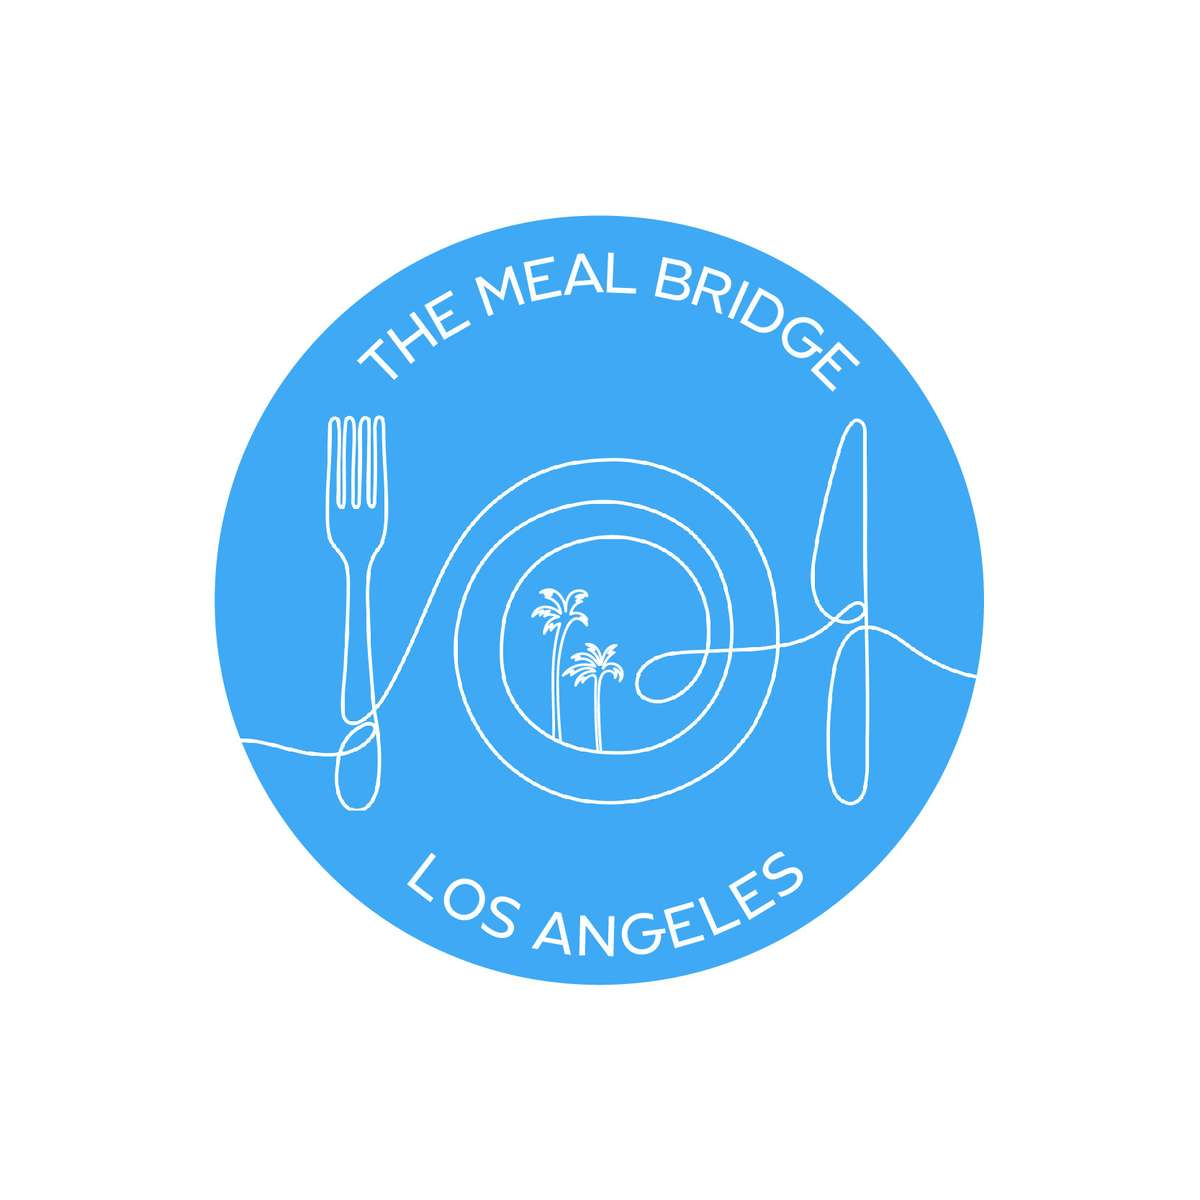 the meal bridge